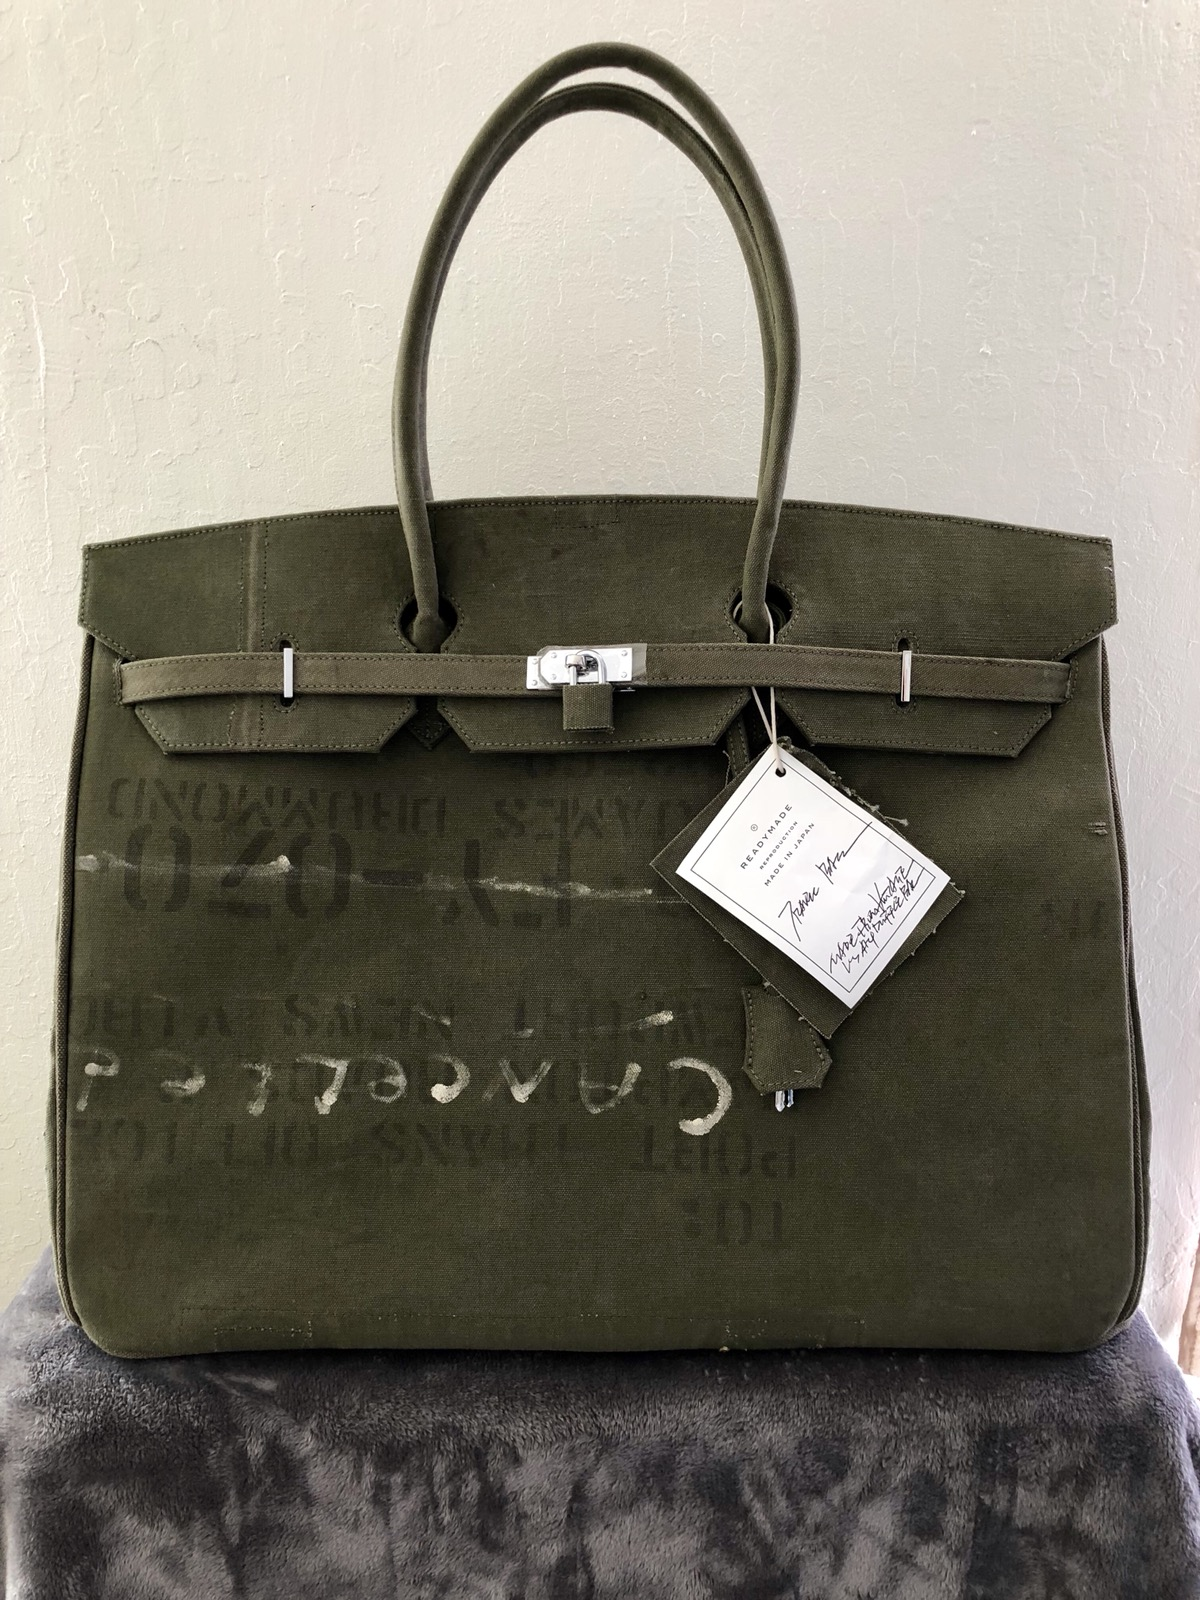 READYMADE Readymade Vintage US Army Travel Hermès Birkin Bag 50cm Made In  Japan Size one size - Bags   Luggage for Sale - Grailed 4760cf793db83